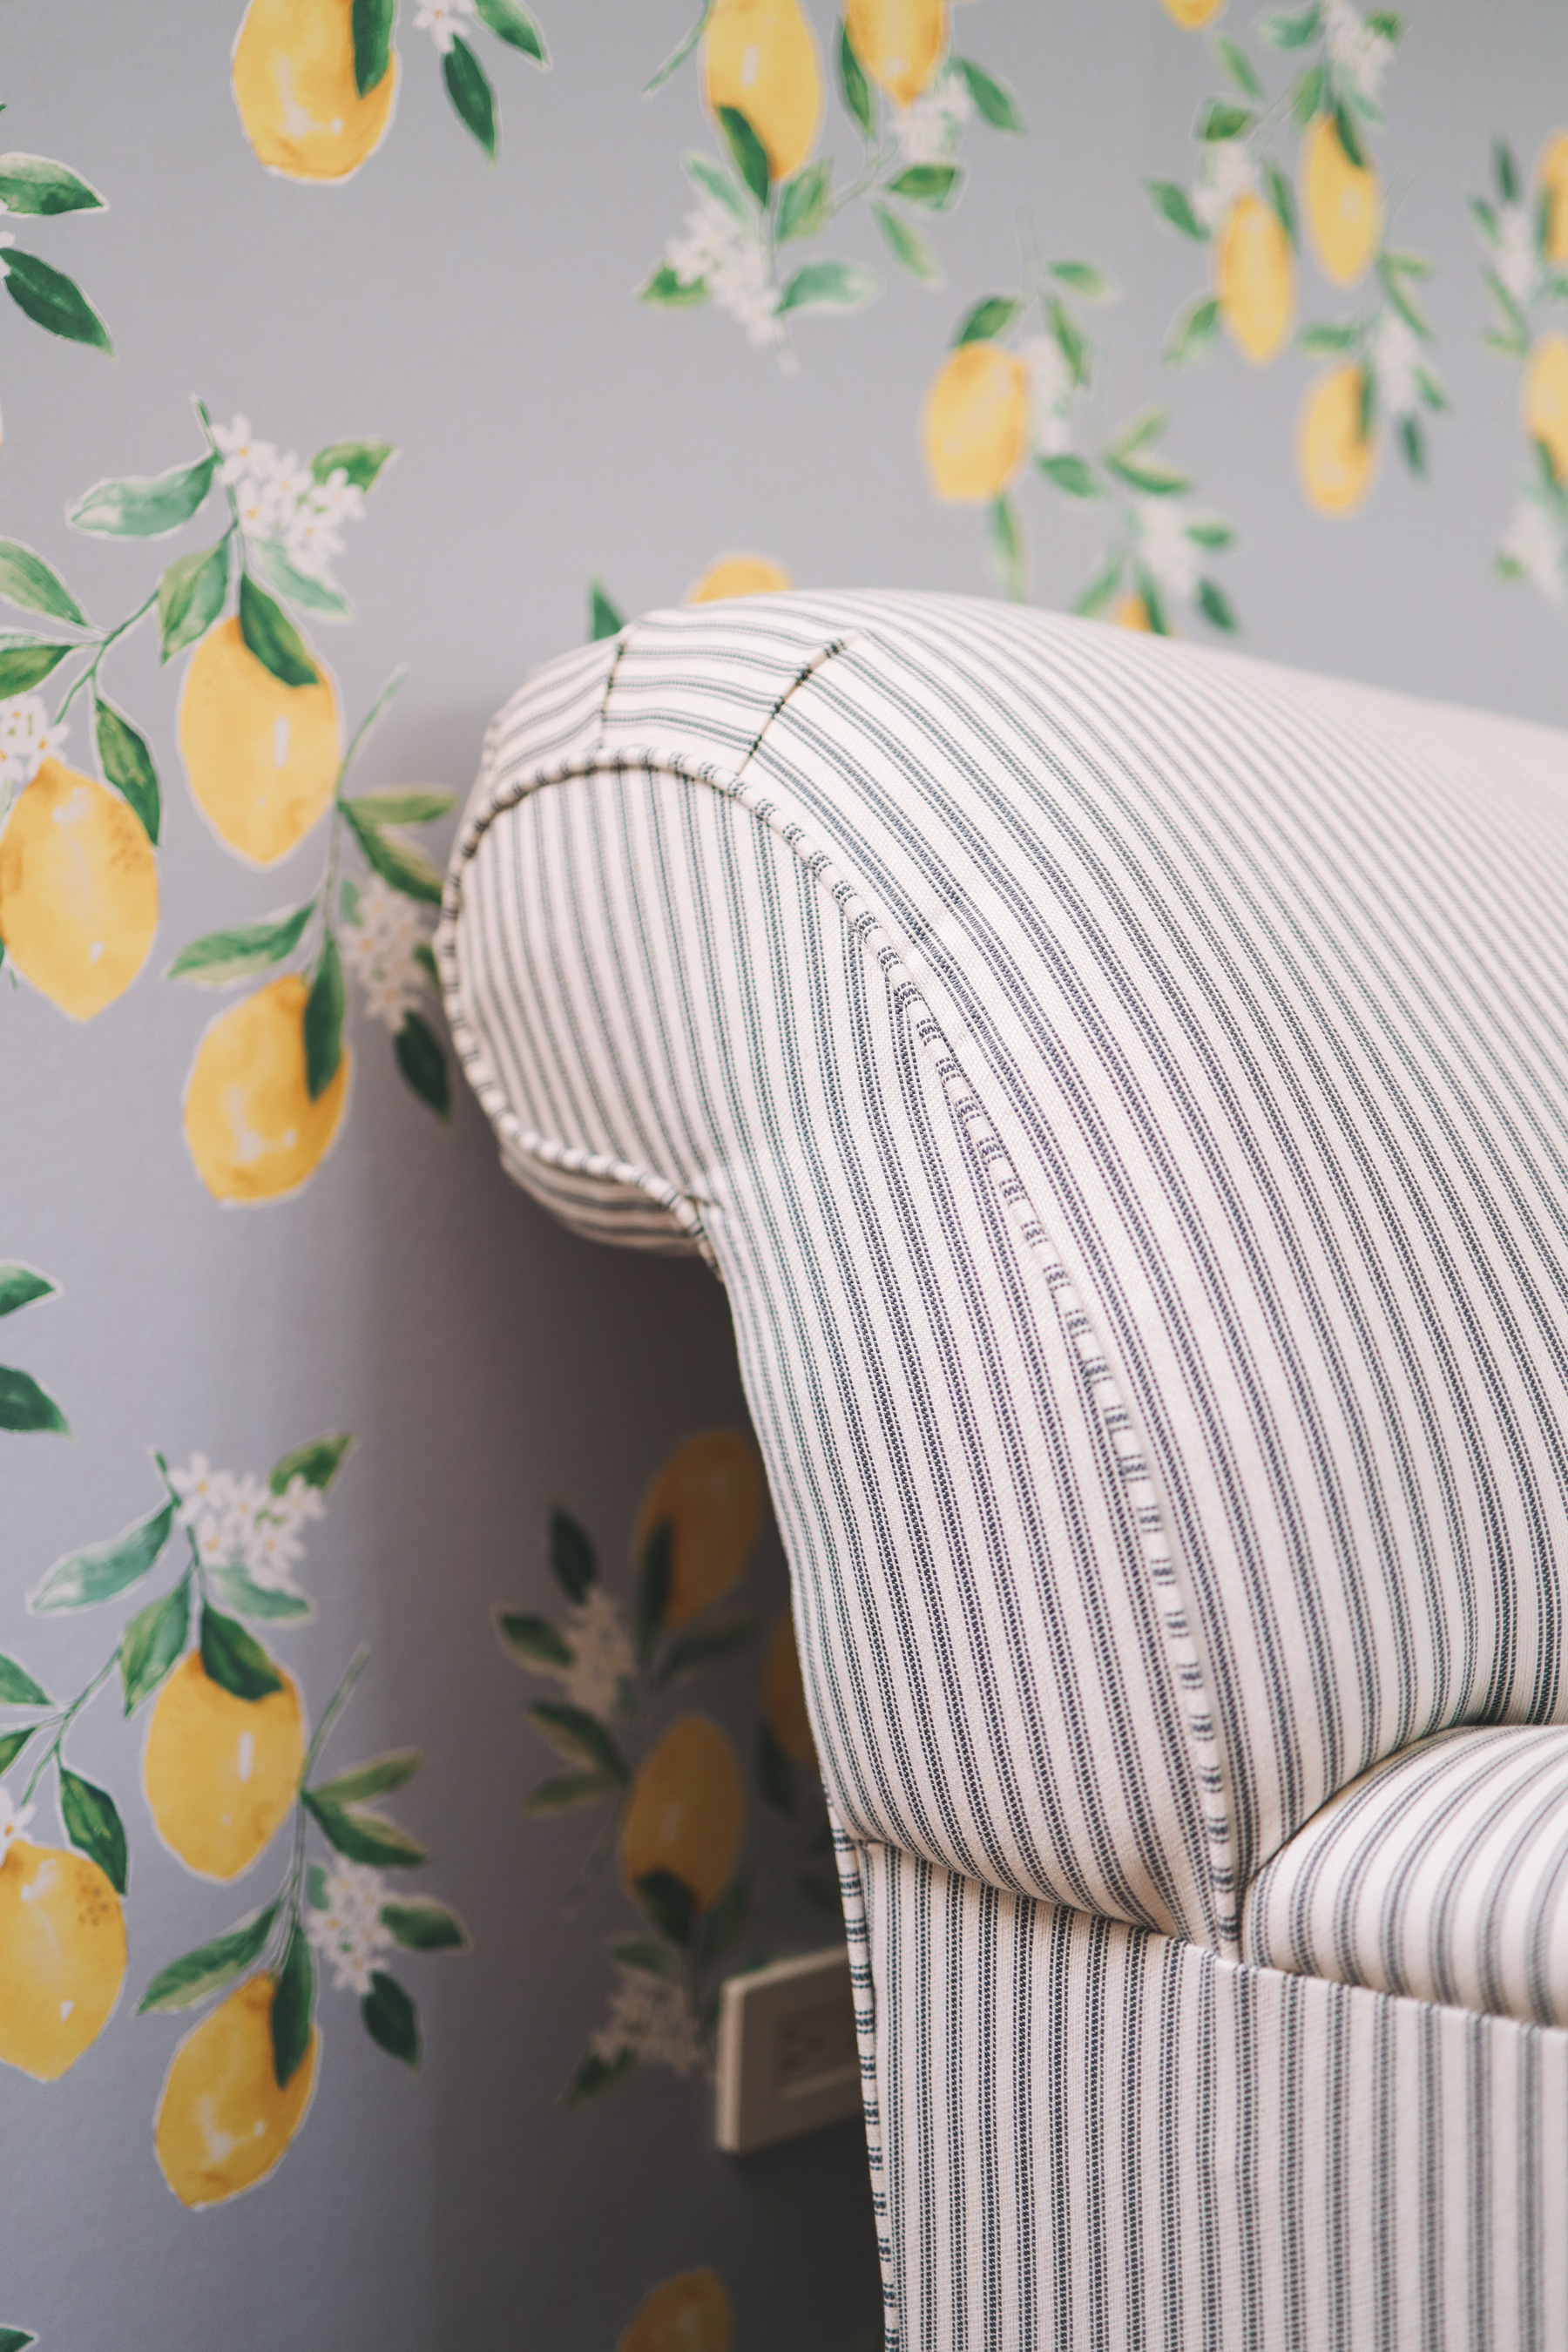 A lemon wallpaper adds a zest to the stripes in the loveseat